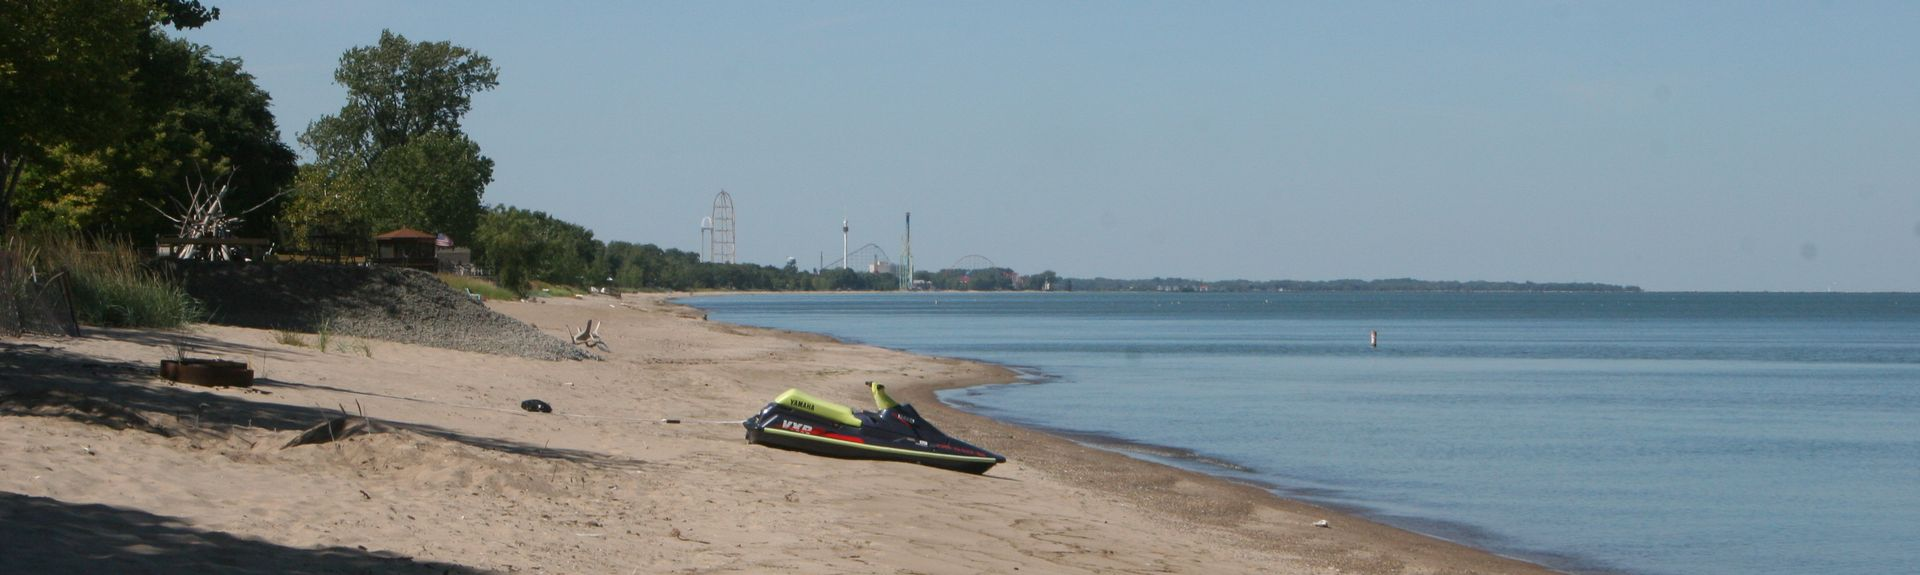 Nickel Plate Beach, Huron, Ohio, United States